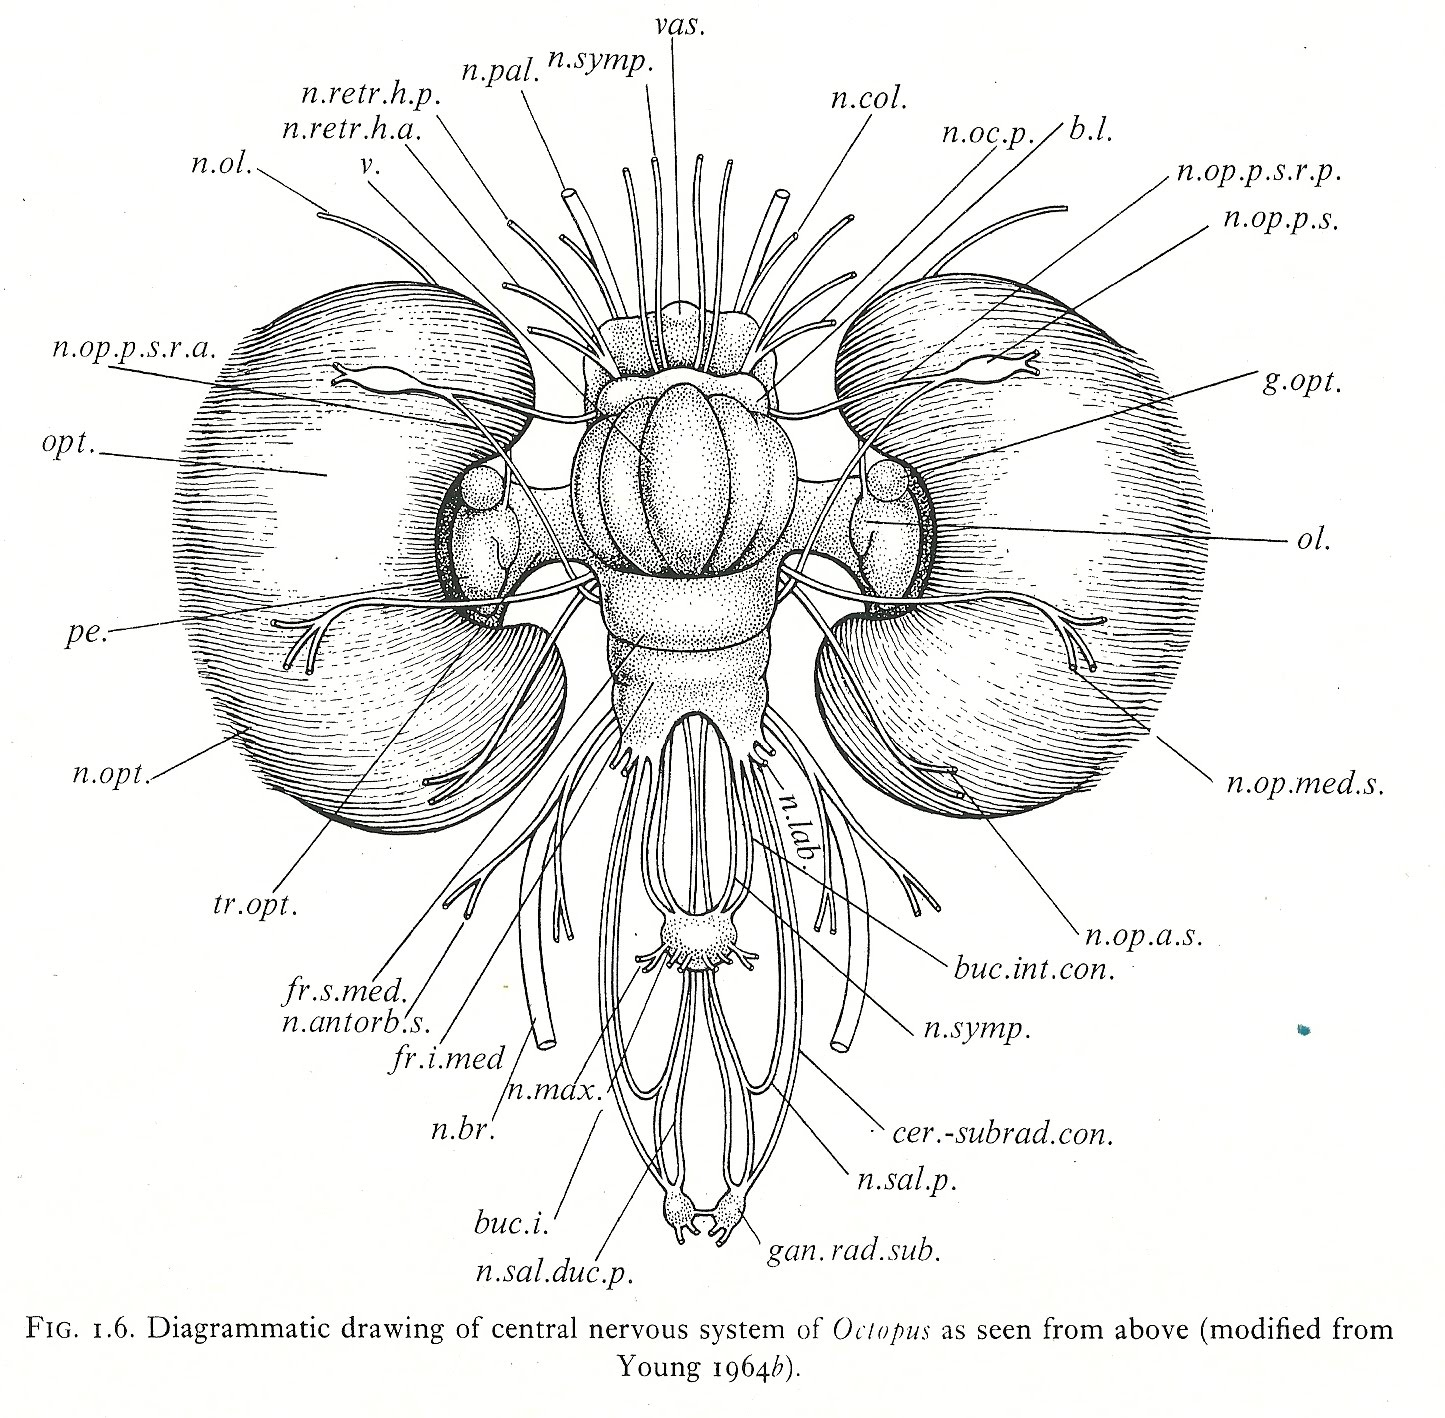 Labeled Diagram Of Octopus 1987 Yamaha 350 Warrior Wiring Cephalove A View The Brain This Figure Is From J Z Young S Anatomy Nervous System Vulgaris 1971 Which I Was Fortunate Enough To Come Across Recently